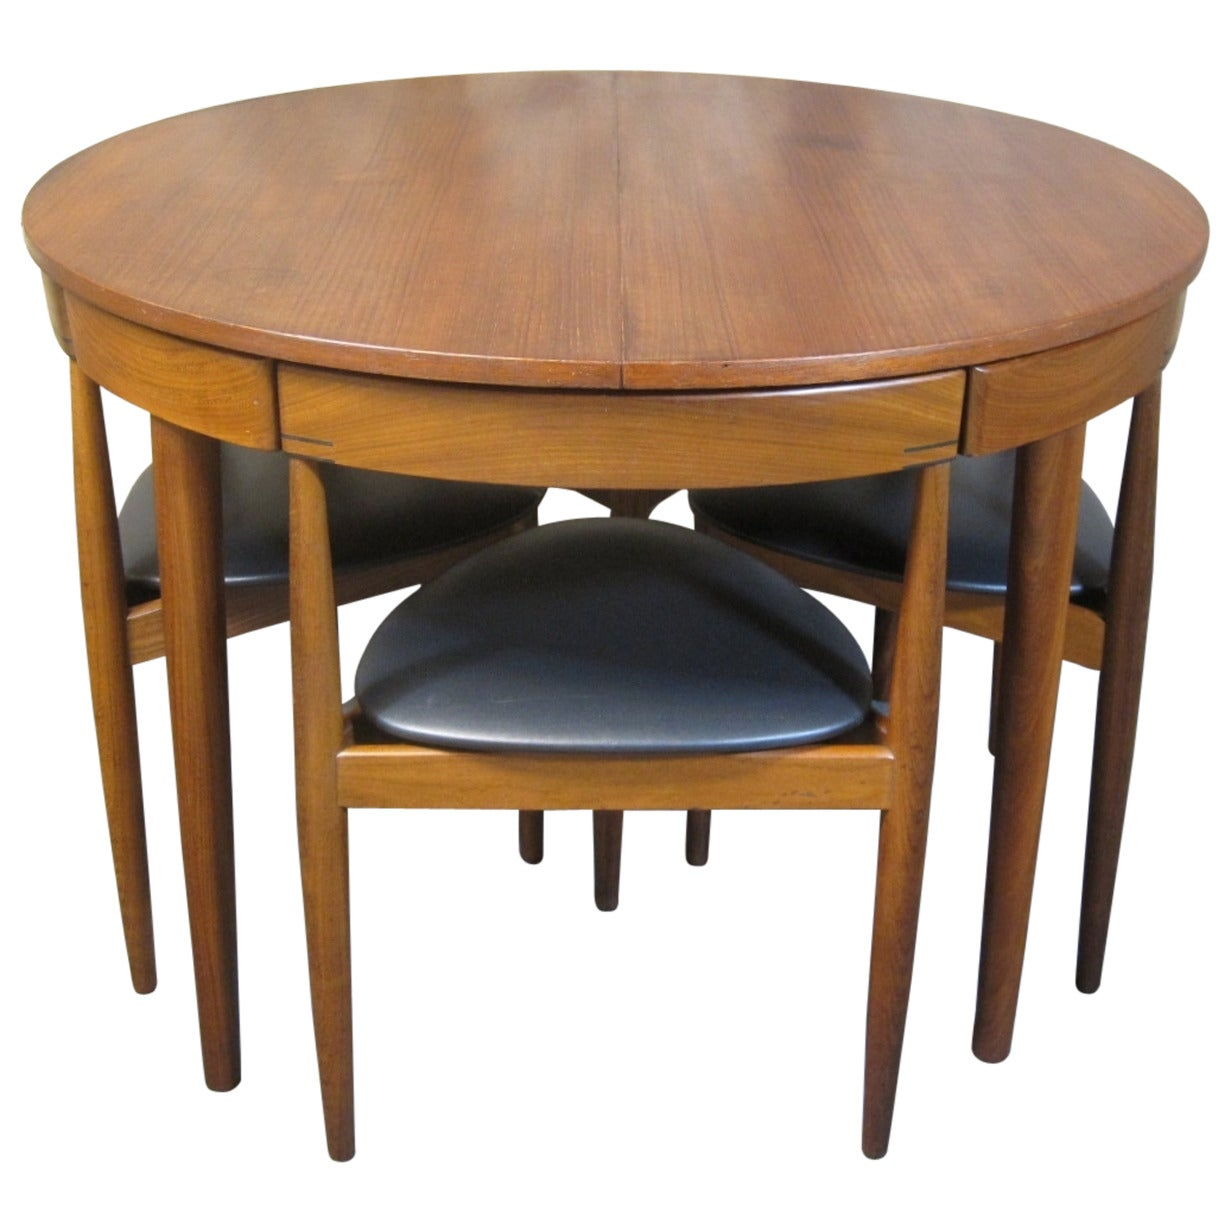 Hans olsen for frem rojle teak dining table and chairs for Furniture dining table